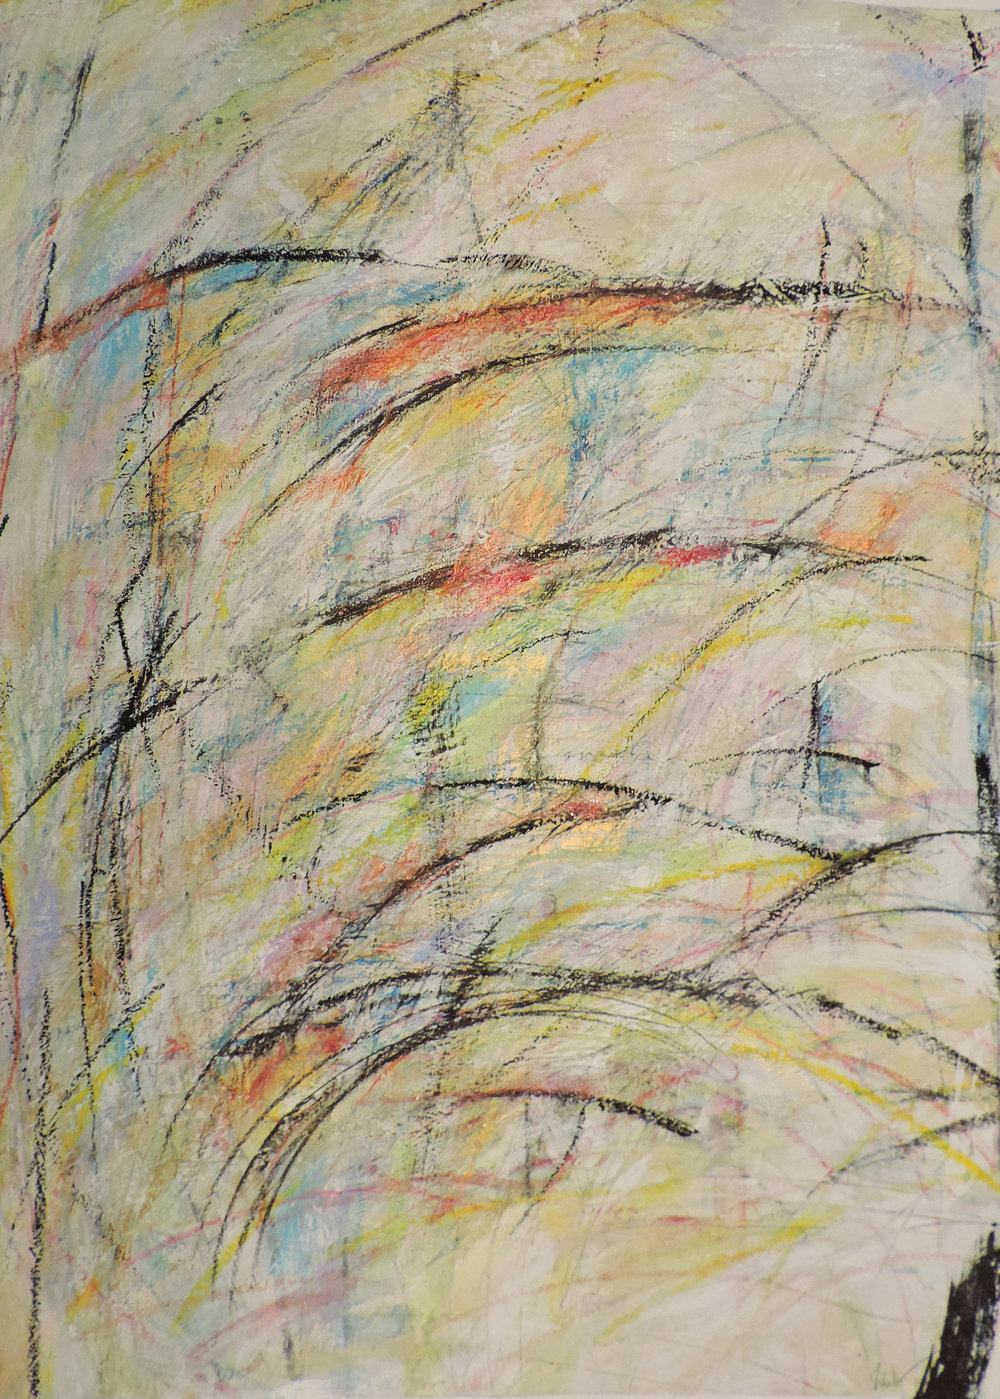 acrylic / oil pastel / colored pencil / crayon on paper, 23x30